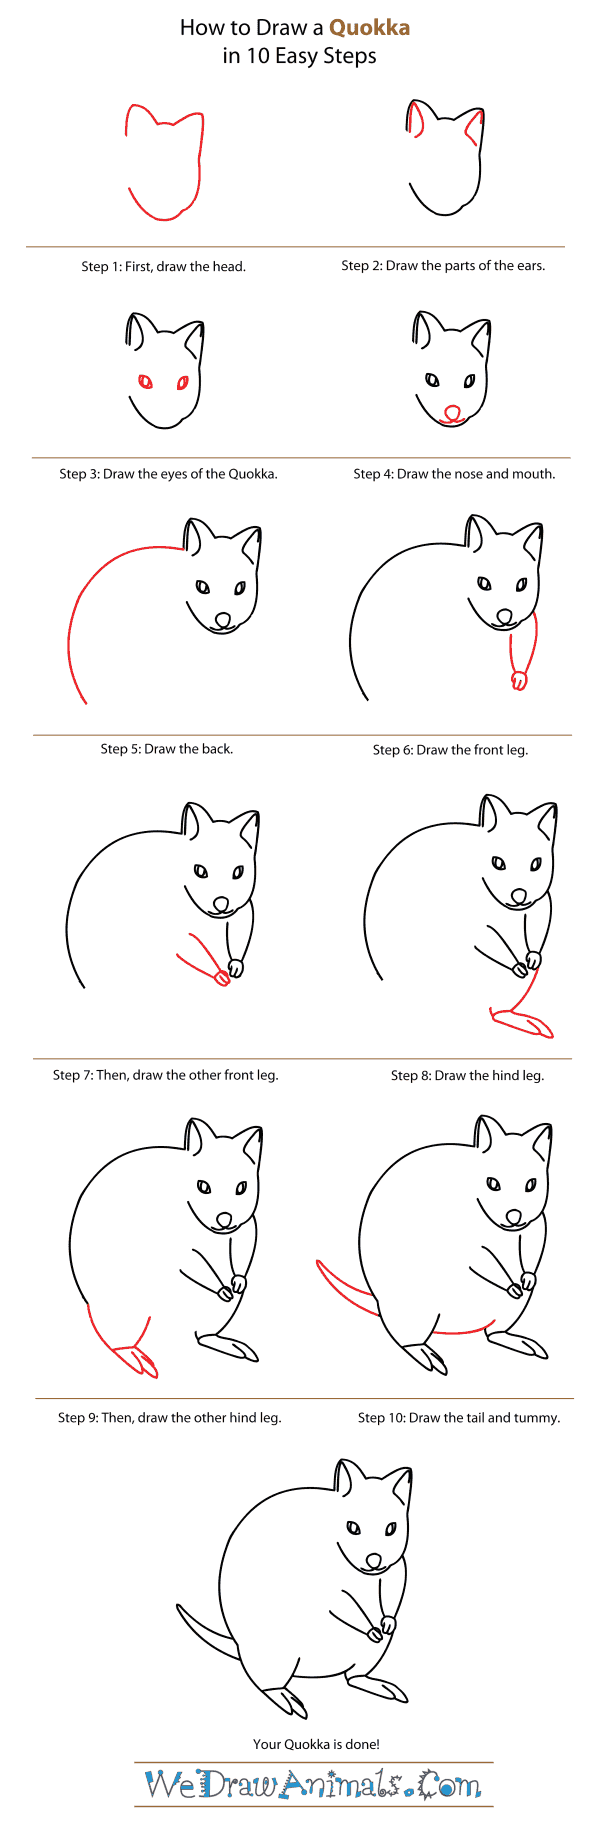 How to Draw a Quokka - Step-By-Step Tutorial